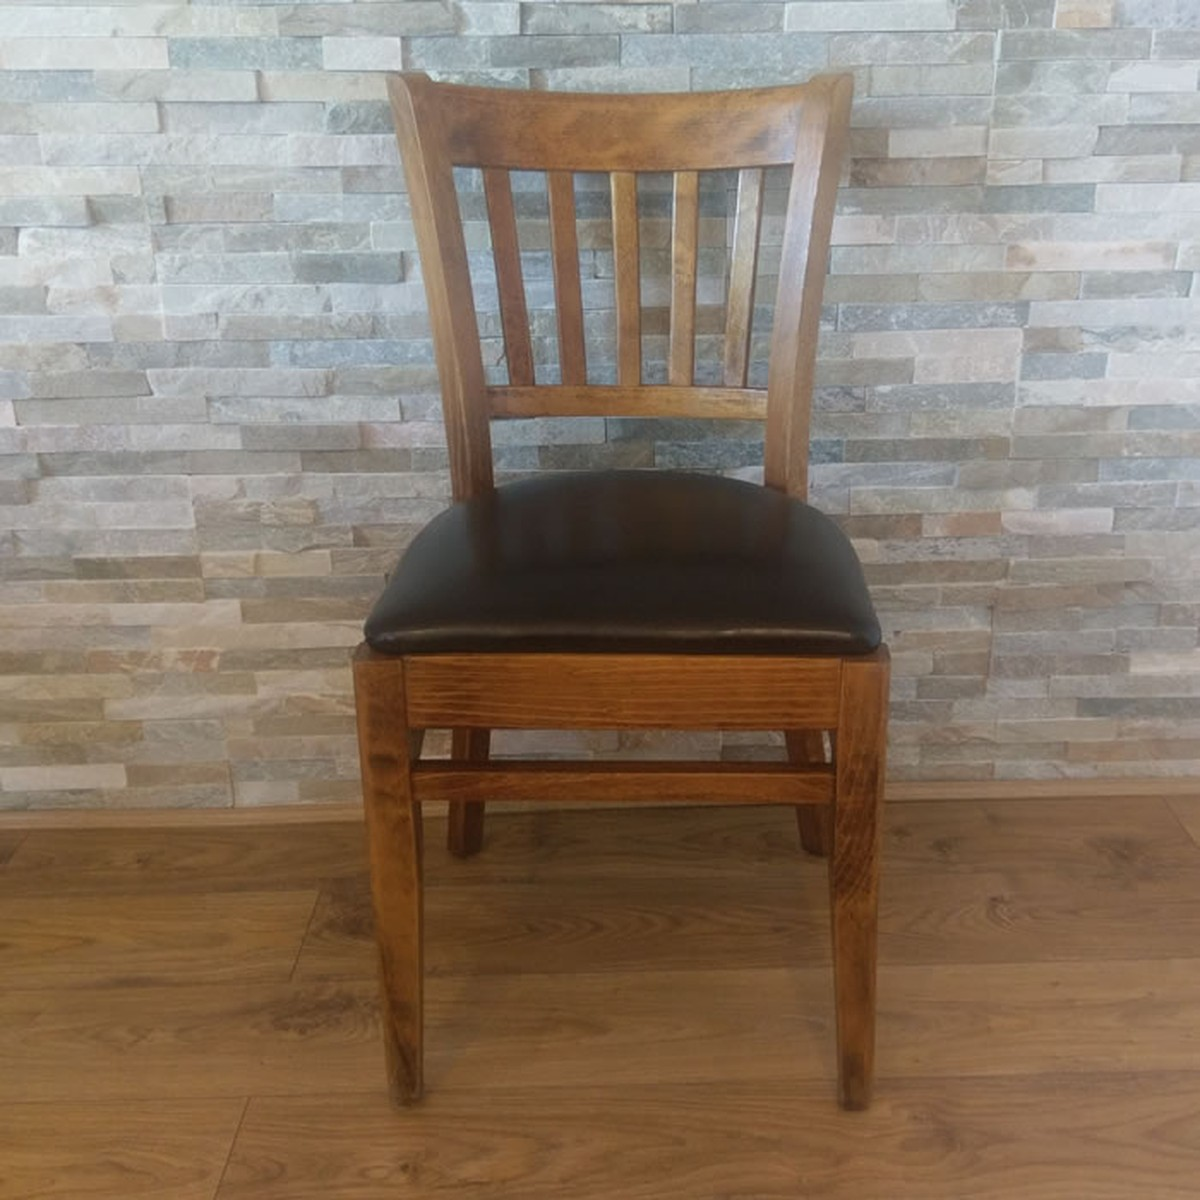 Cafe Chairs For Sale Secondhand Chairs And Tables Pub And Bar Furniture